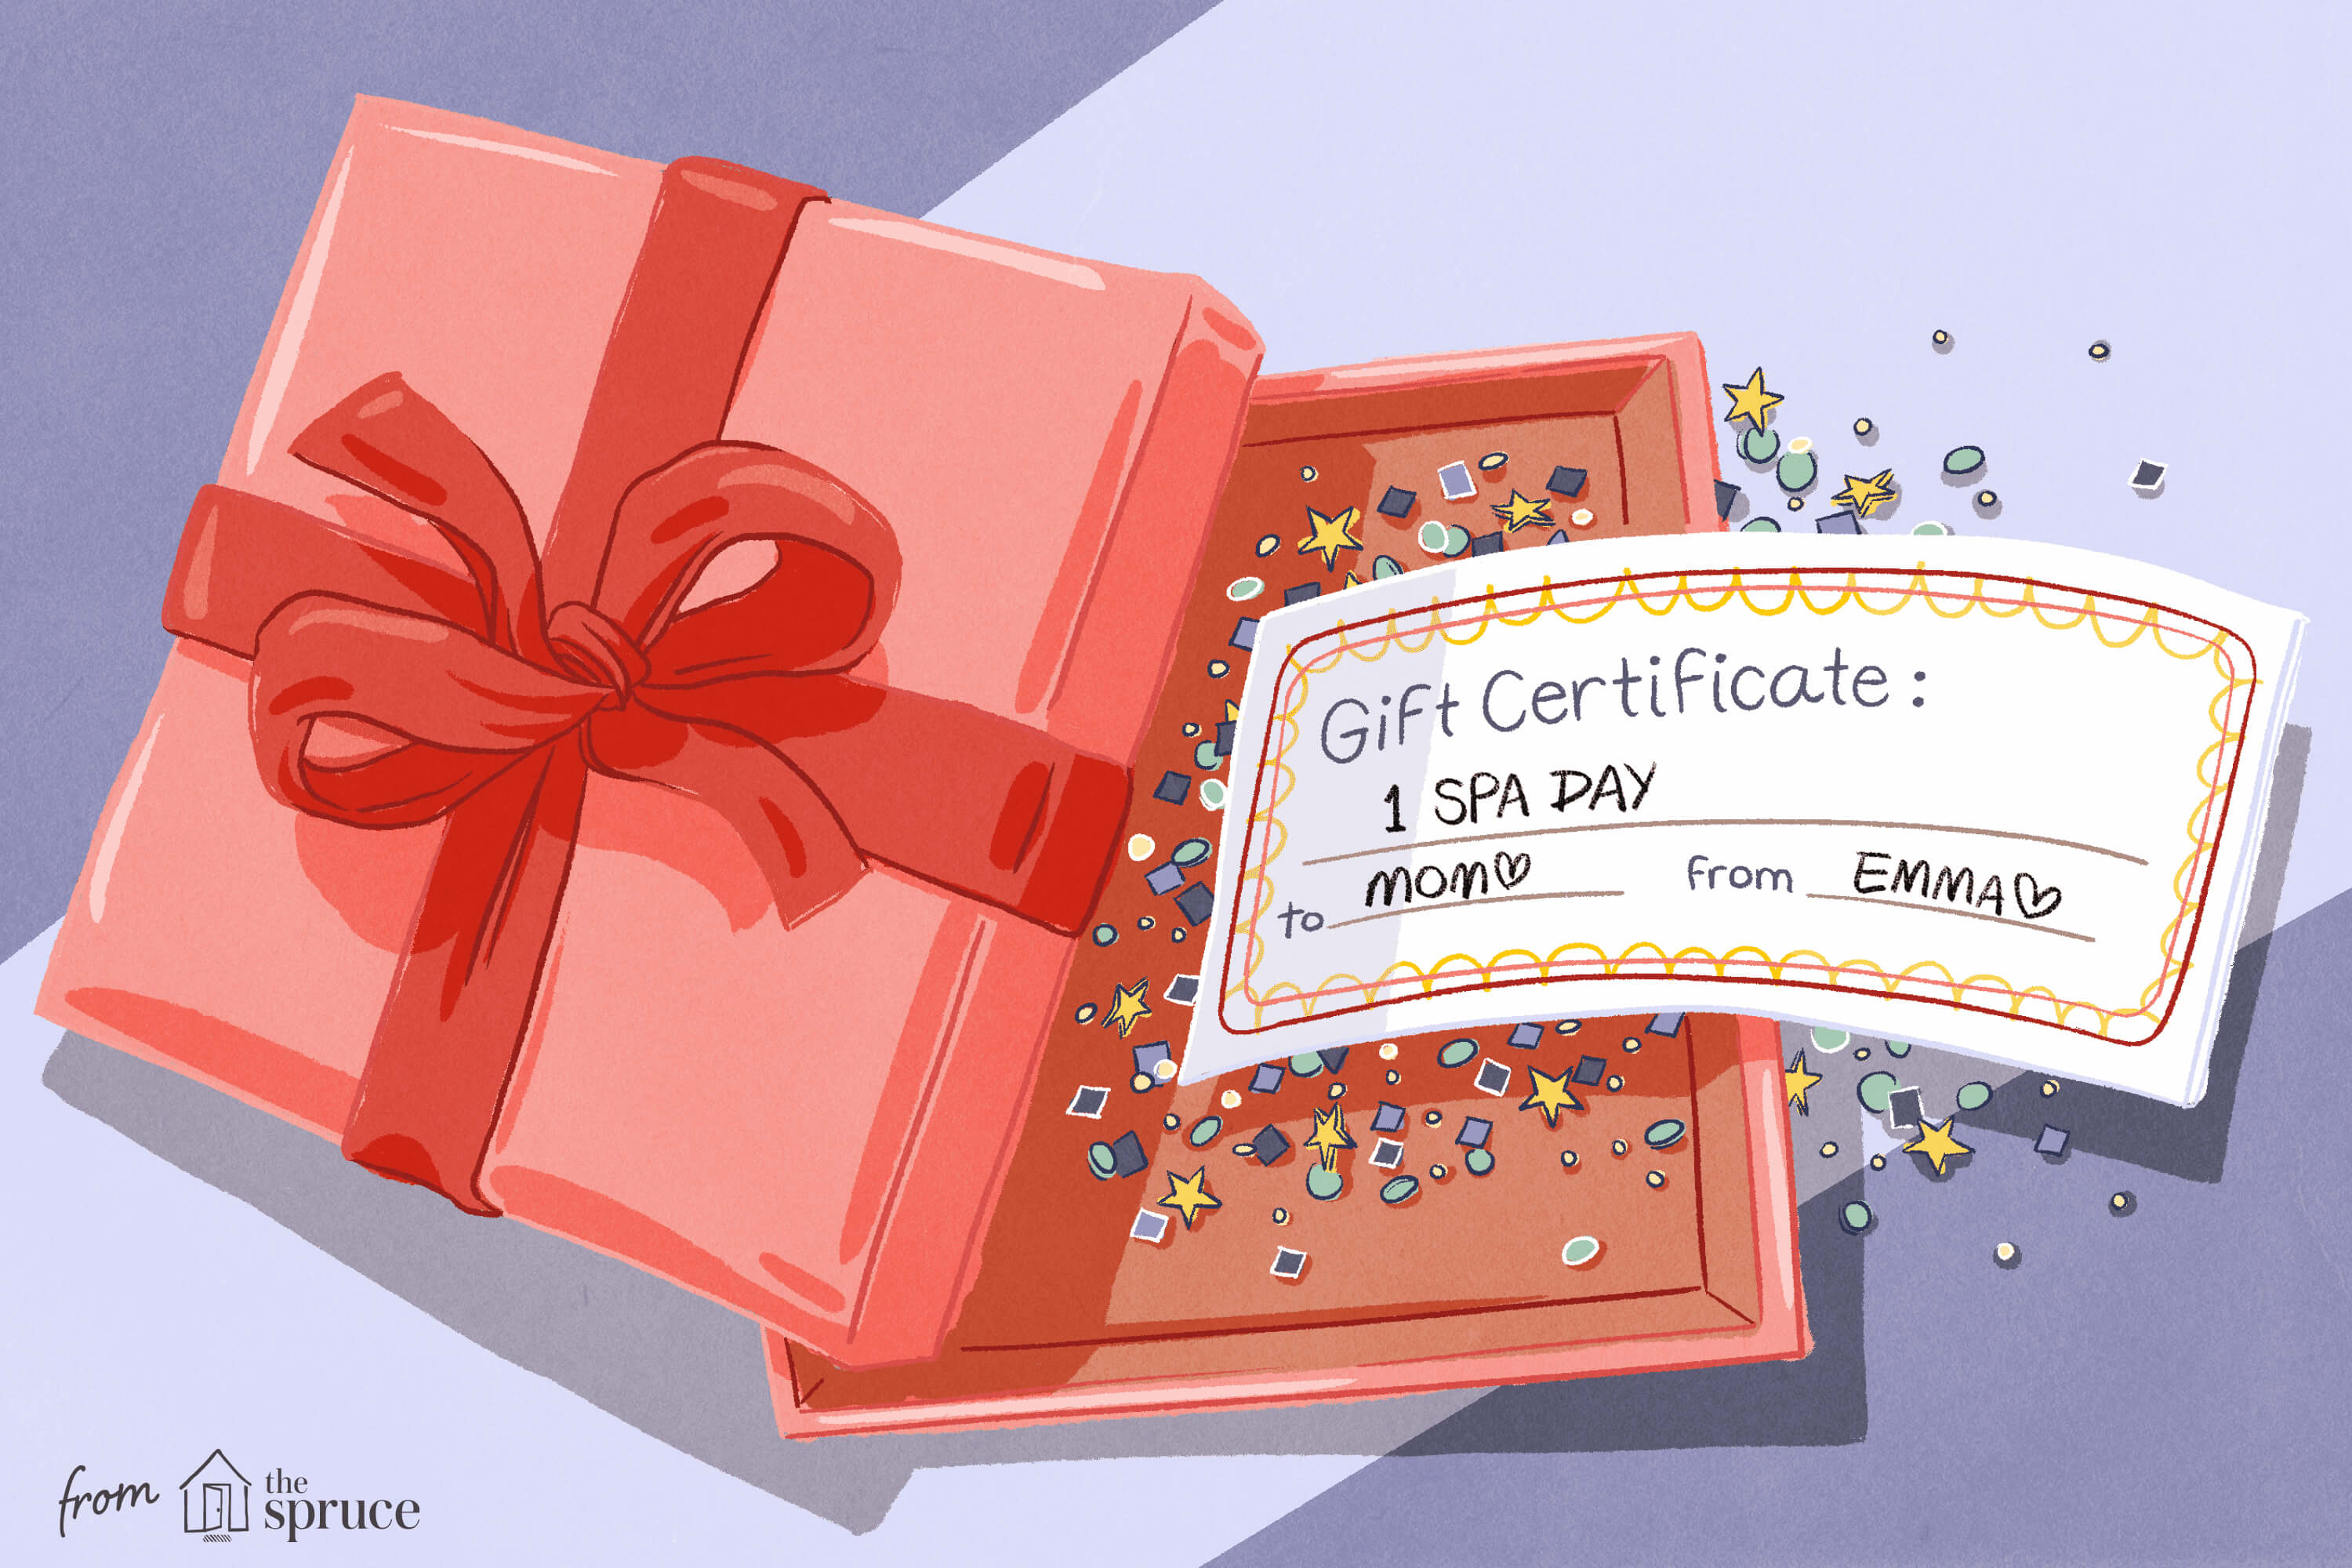 Free Gift Certificate Templates You Can Customize pertaining to Publisher Gift Certificate Template